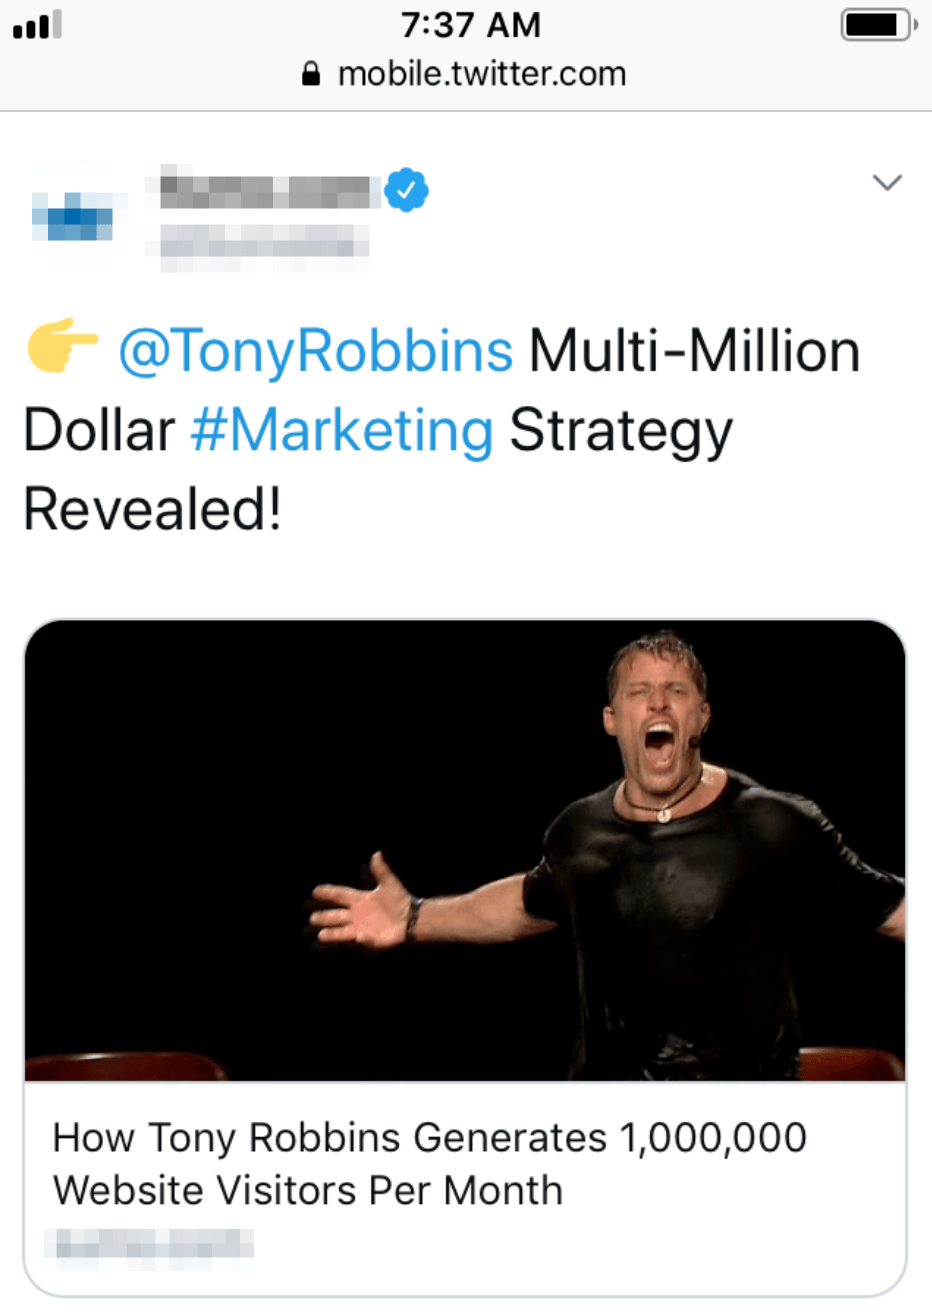 tony robbins twitter ad mobile image